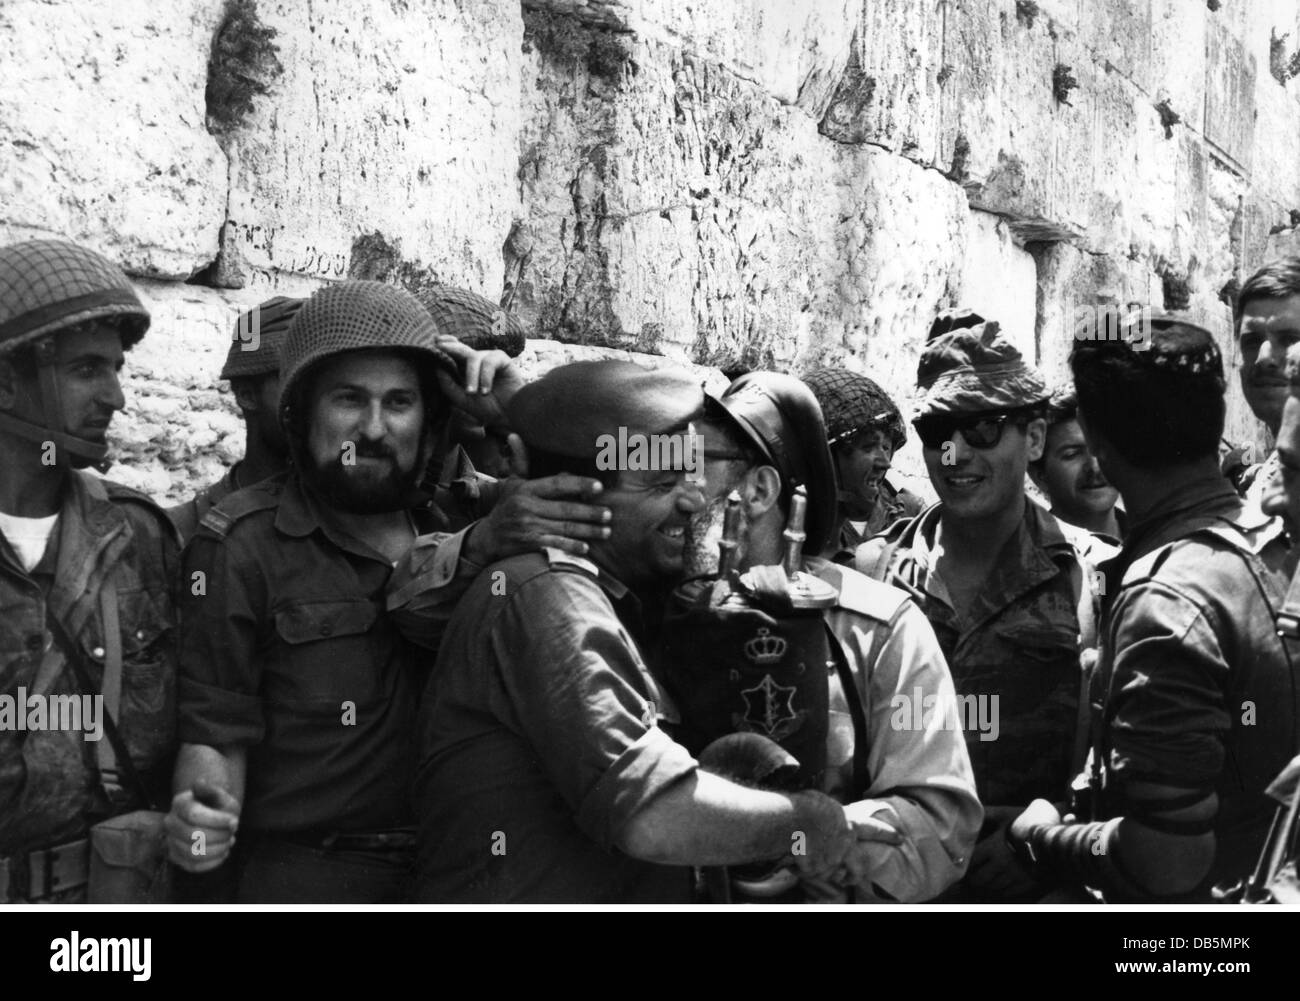 the arab israeli six day war Six-day war: six-day war, brief arab-israeli war that took place june 5–10, 1967, and ended in a decisive victory for israel.